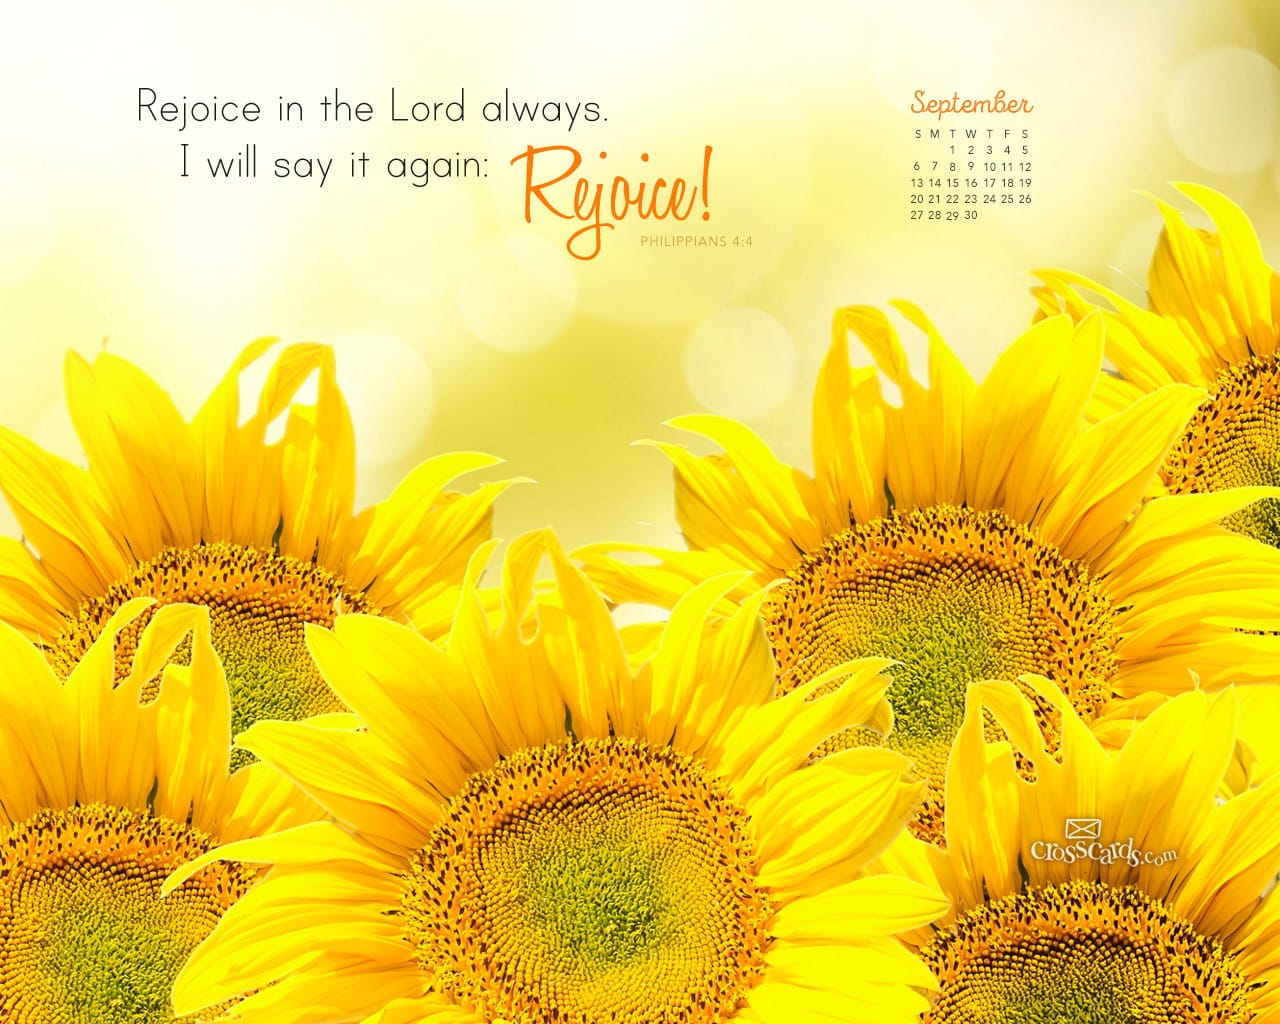 Free Desktop Wallpaper Scripture Fall Inspiring September 2015 Philippians 4 4 Desktop Calendar Free